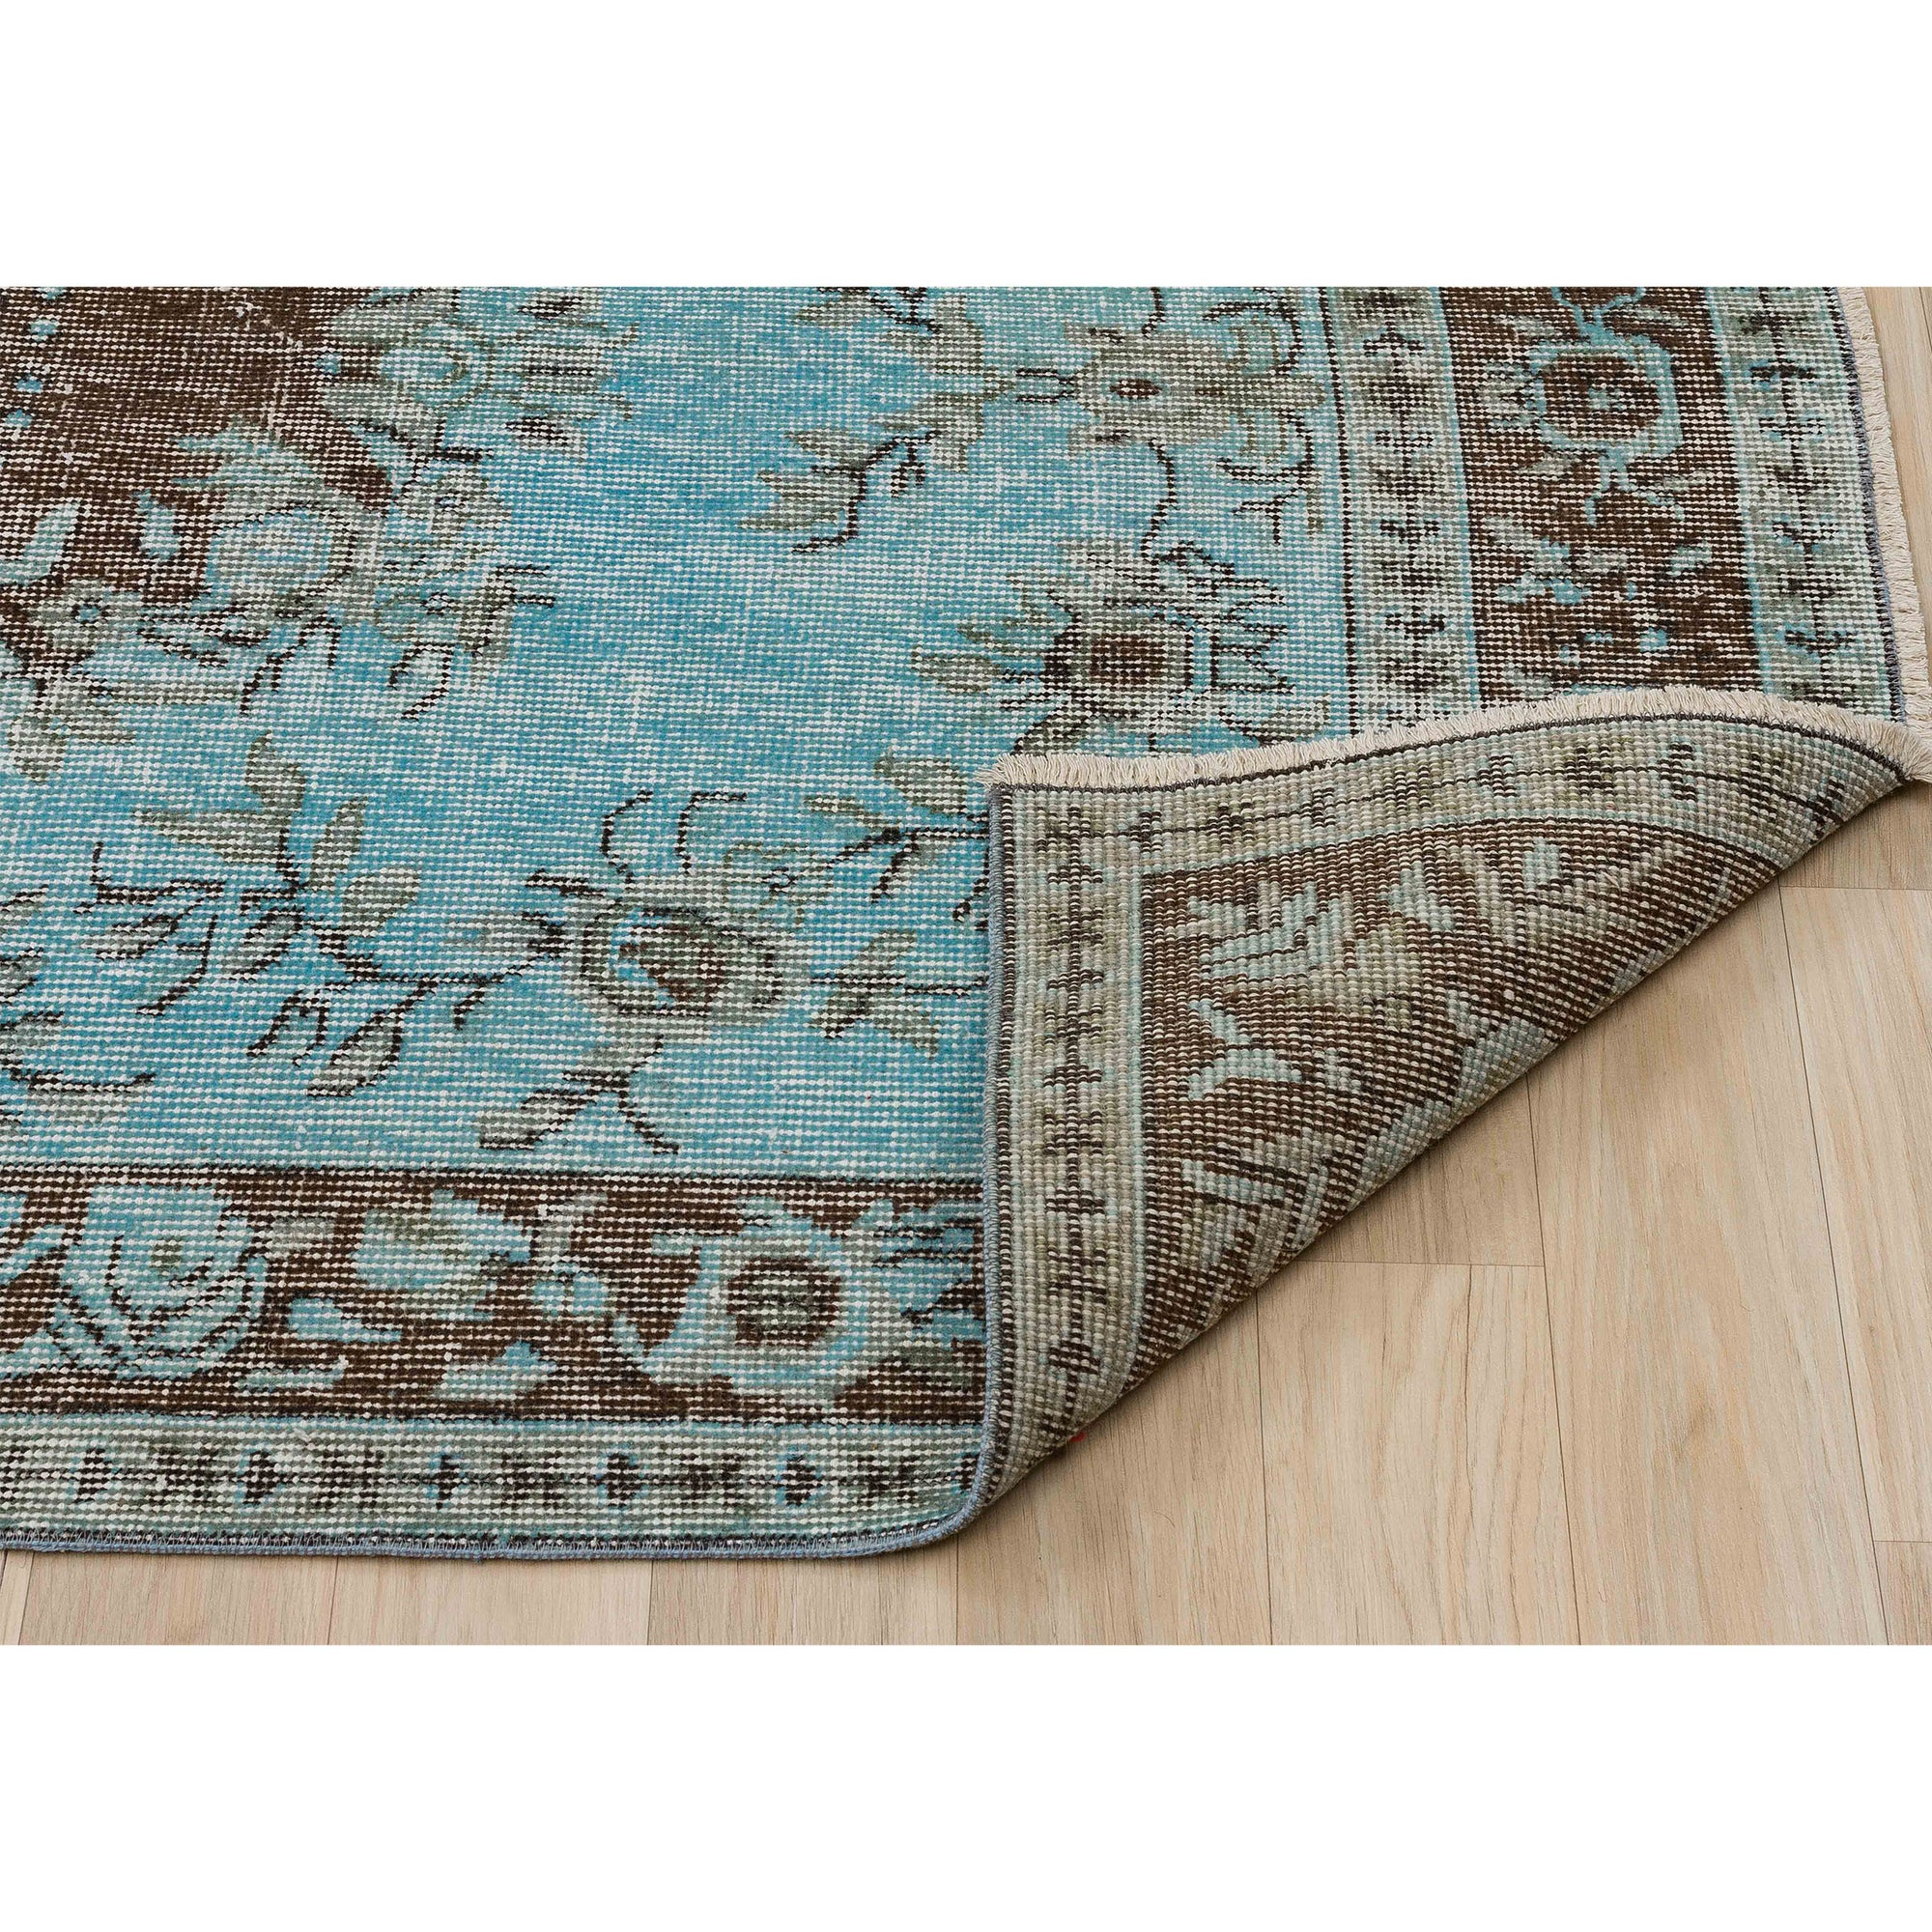 117 X 209 Anatolian Hand Knotted Carpet Vintage Style 60N2693 -  117 × 209 سجادة أناضولية معقودة يدويًا - Shop Online Furniture and Home Decor Store in Dubai, UAE at ebarza